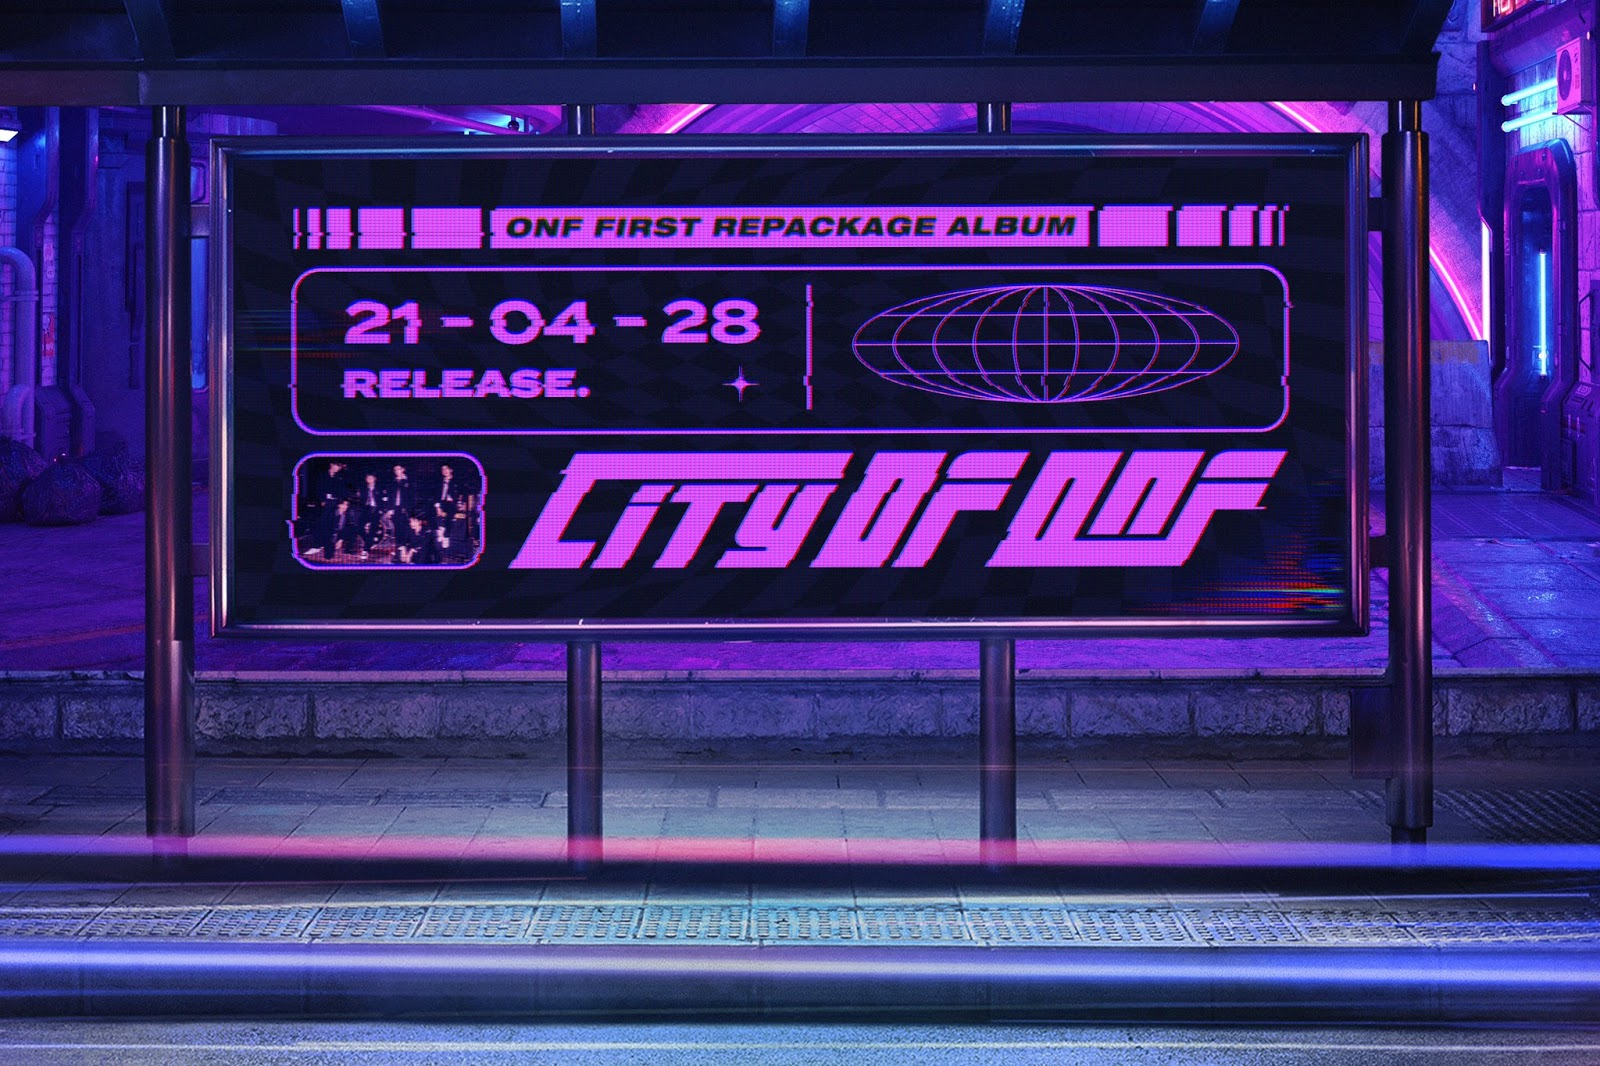 city of onf teaser